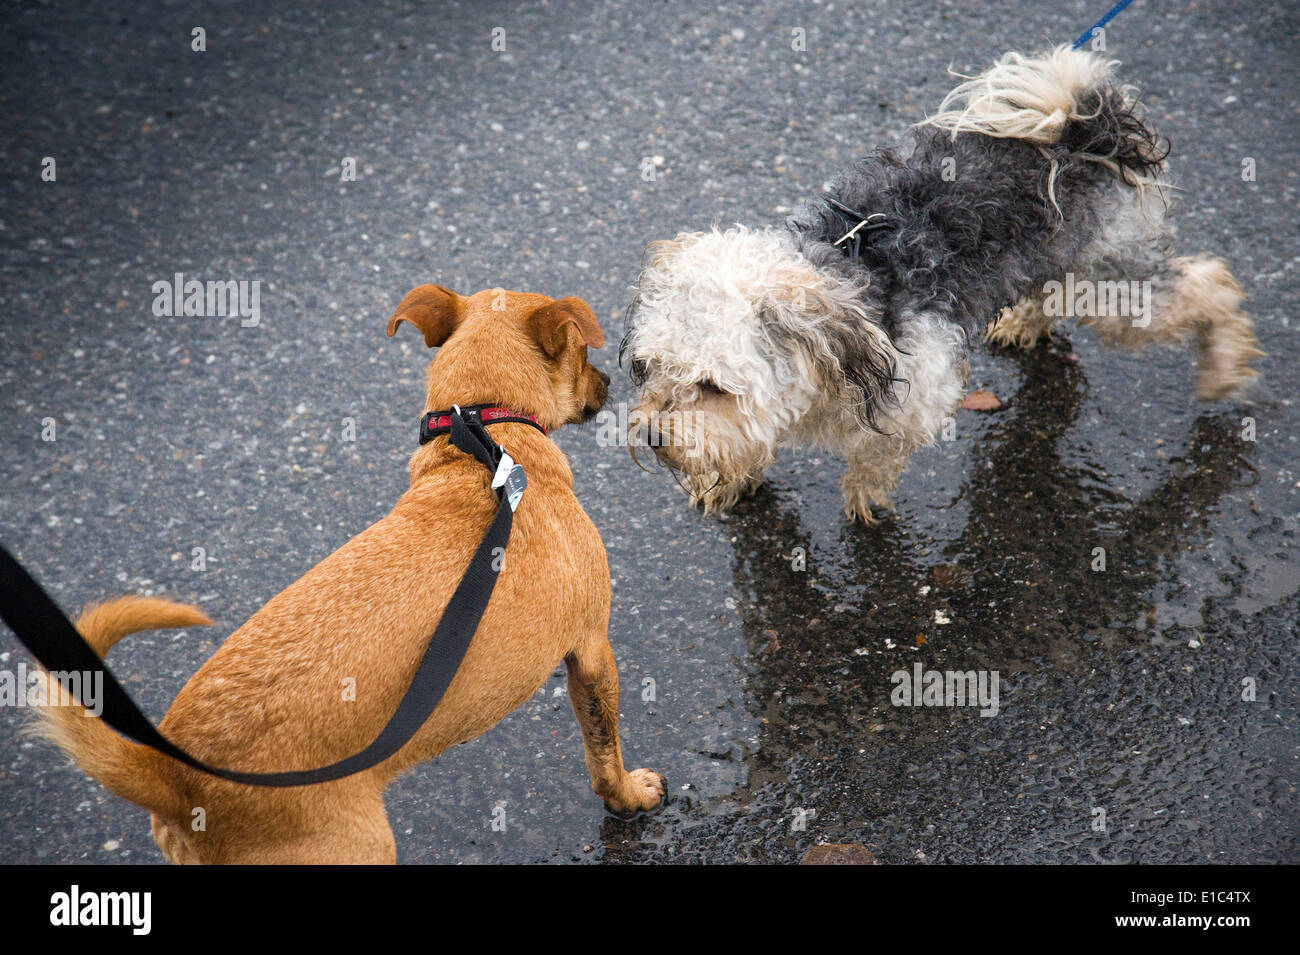 2 small dogs meeting on the street - Stock Image